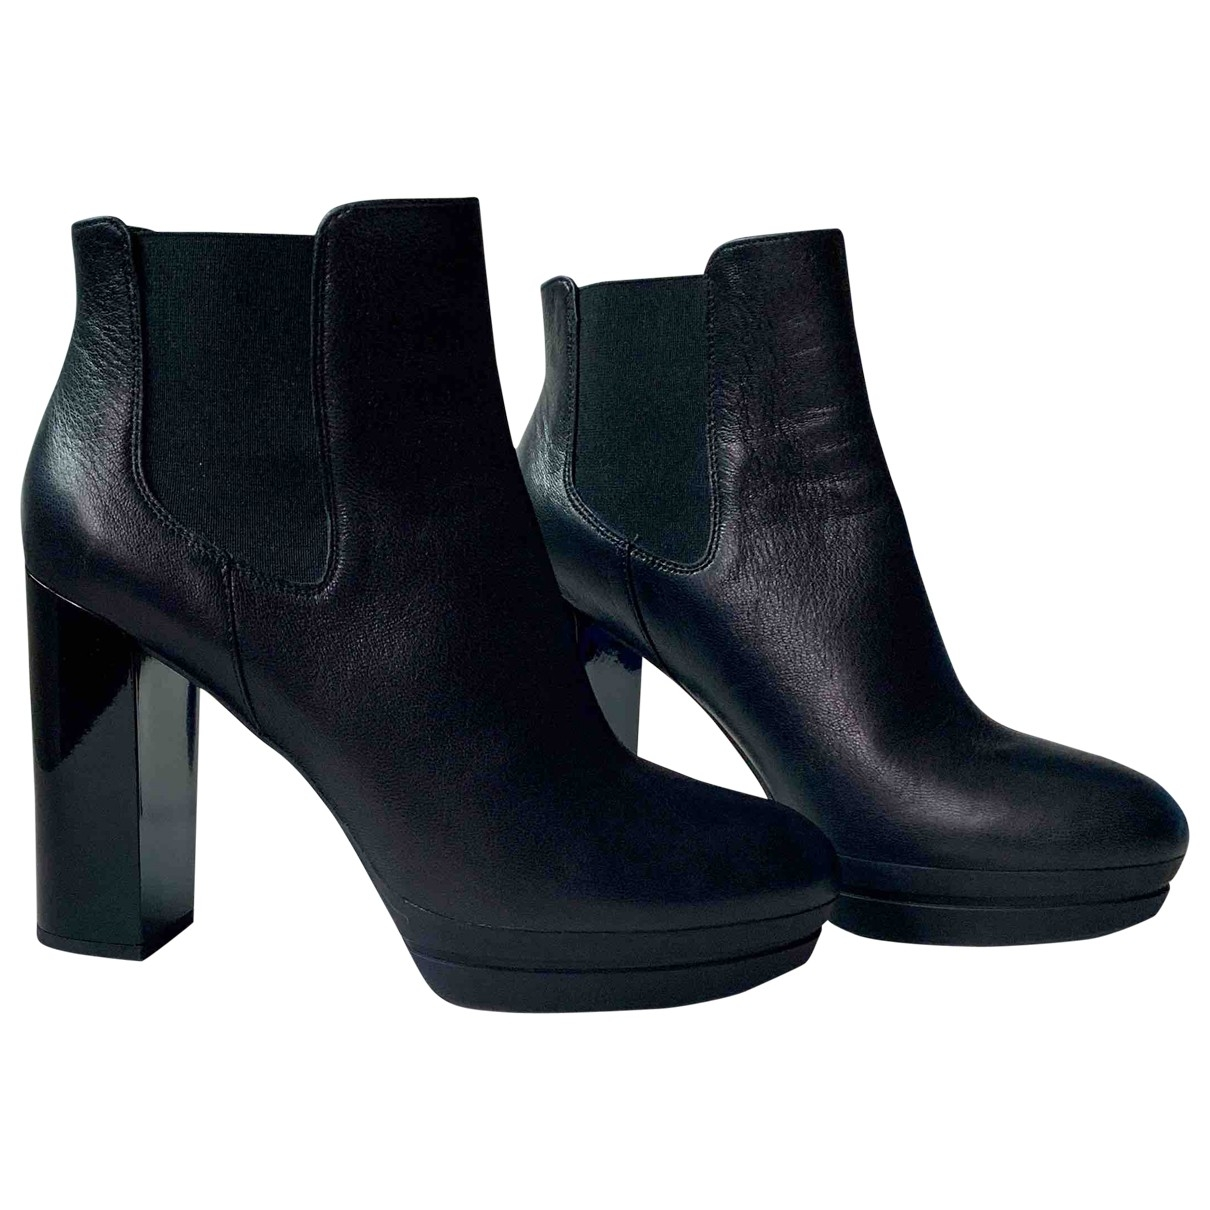 Hogan \N Black Leather Ankle boots for Women 41 EU